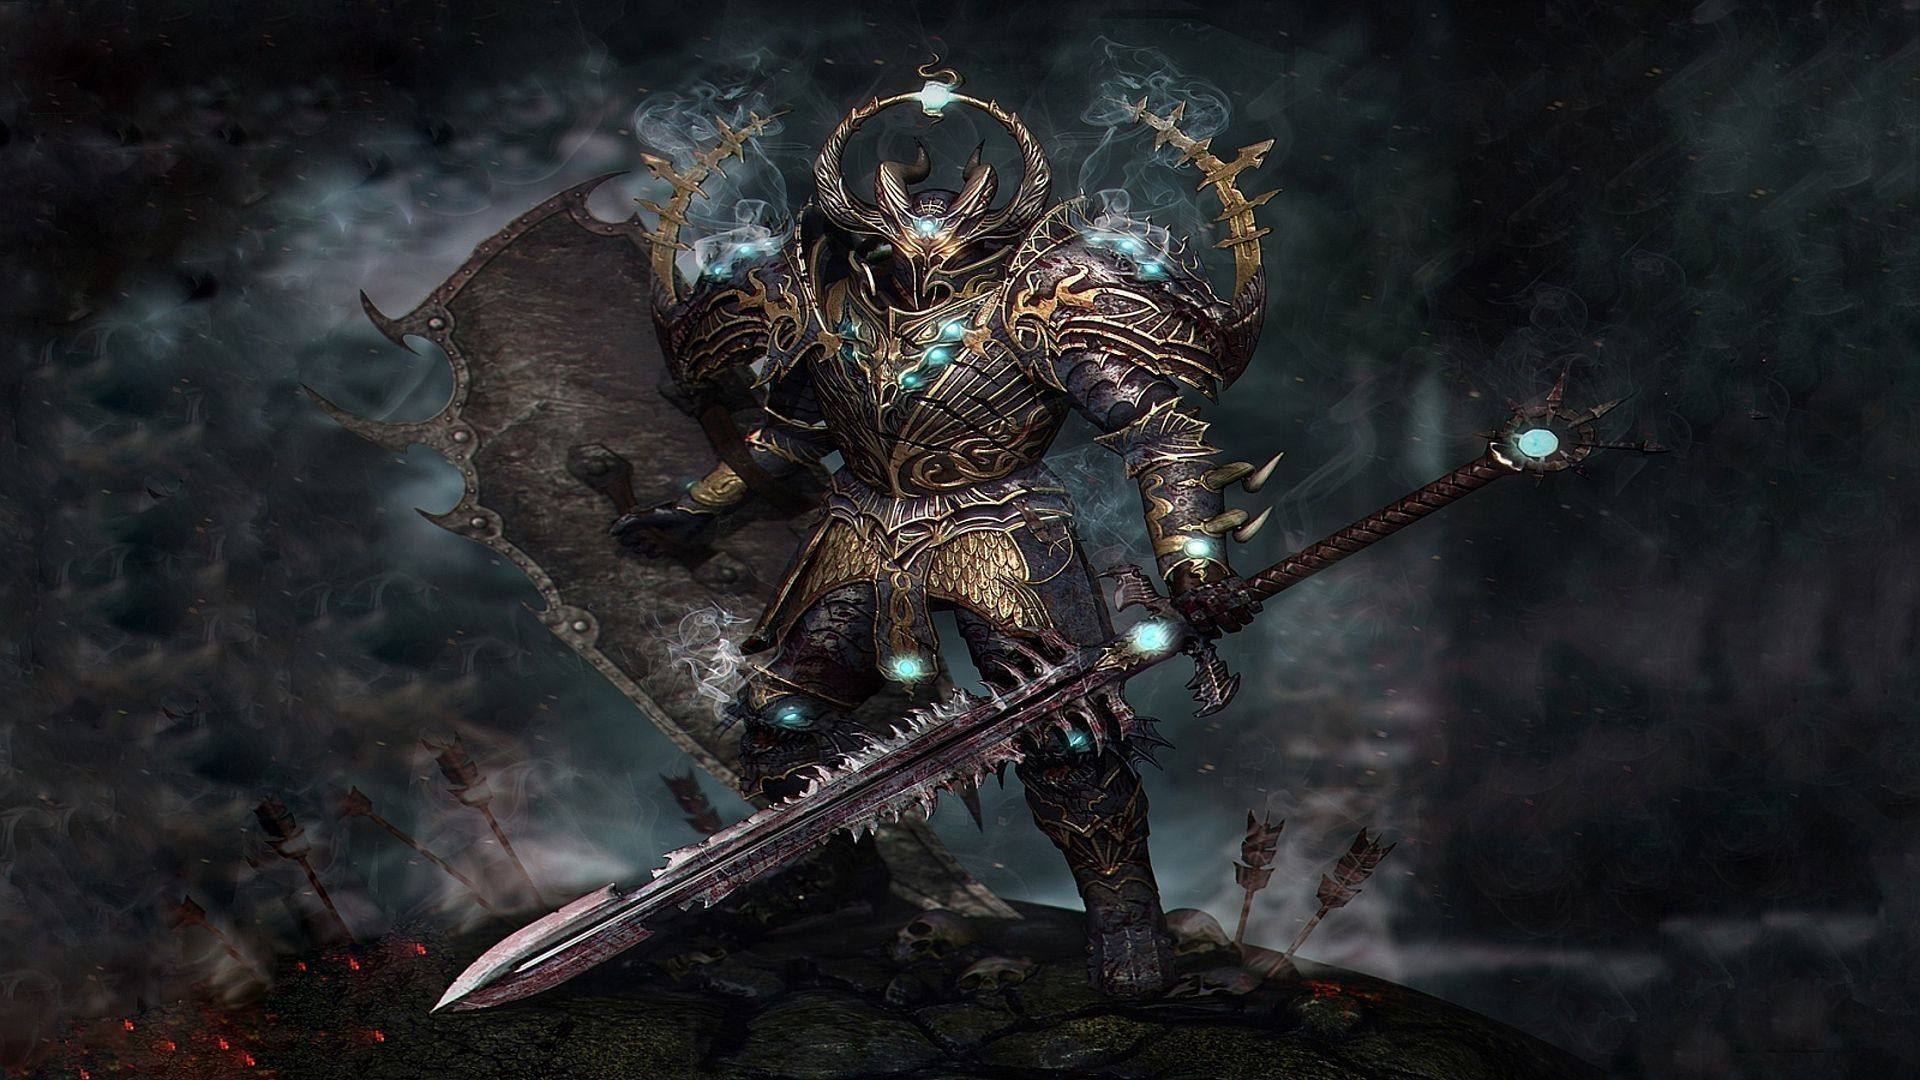 Cool warrior wallpapers top free cool warrior backgrounds wallpaperaccess - Chaos wallpaper ...